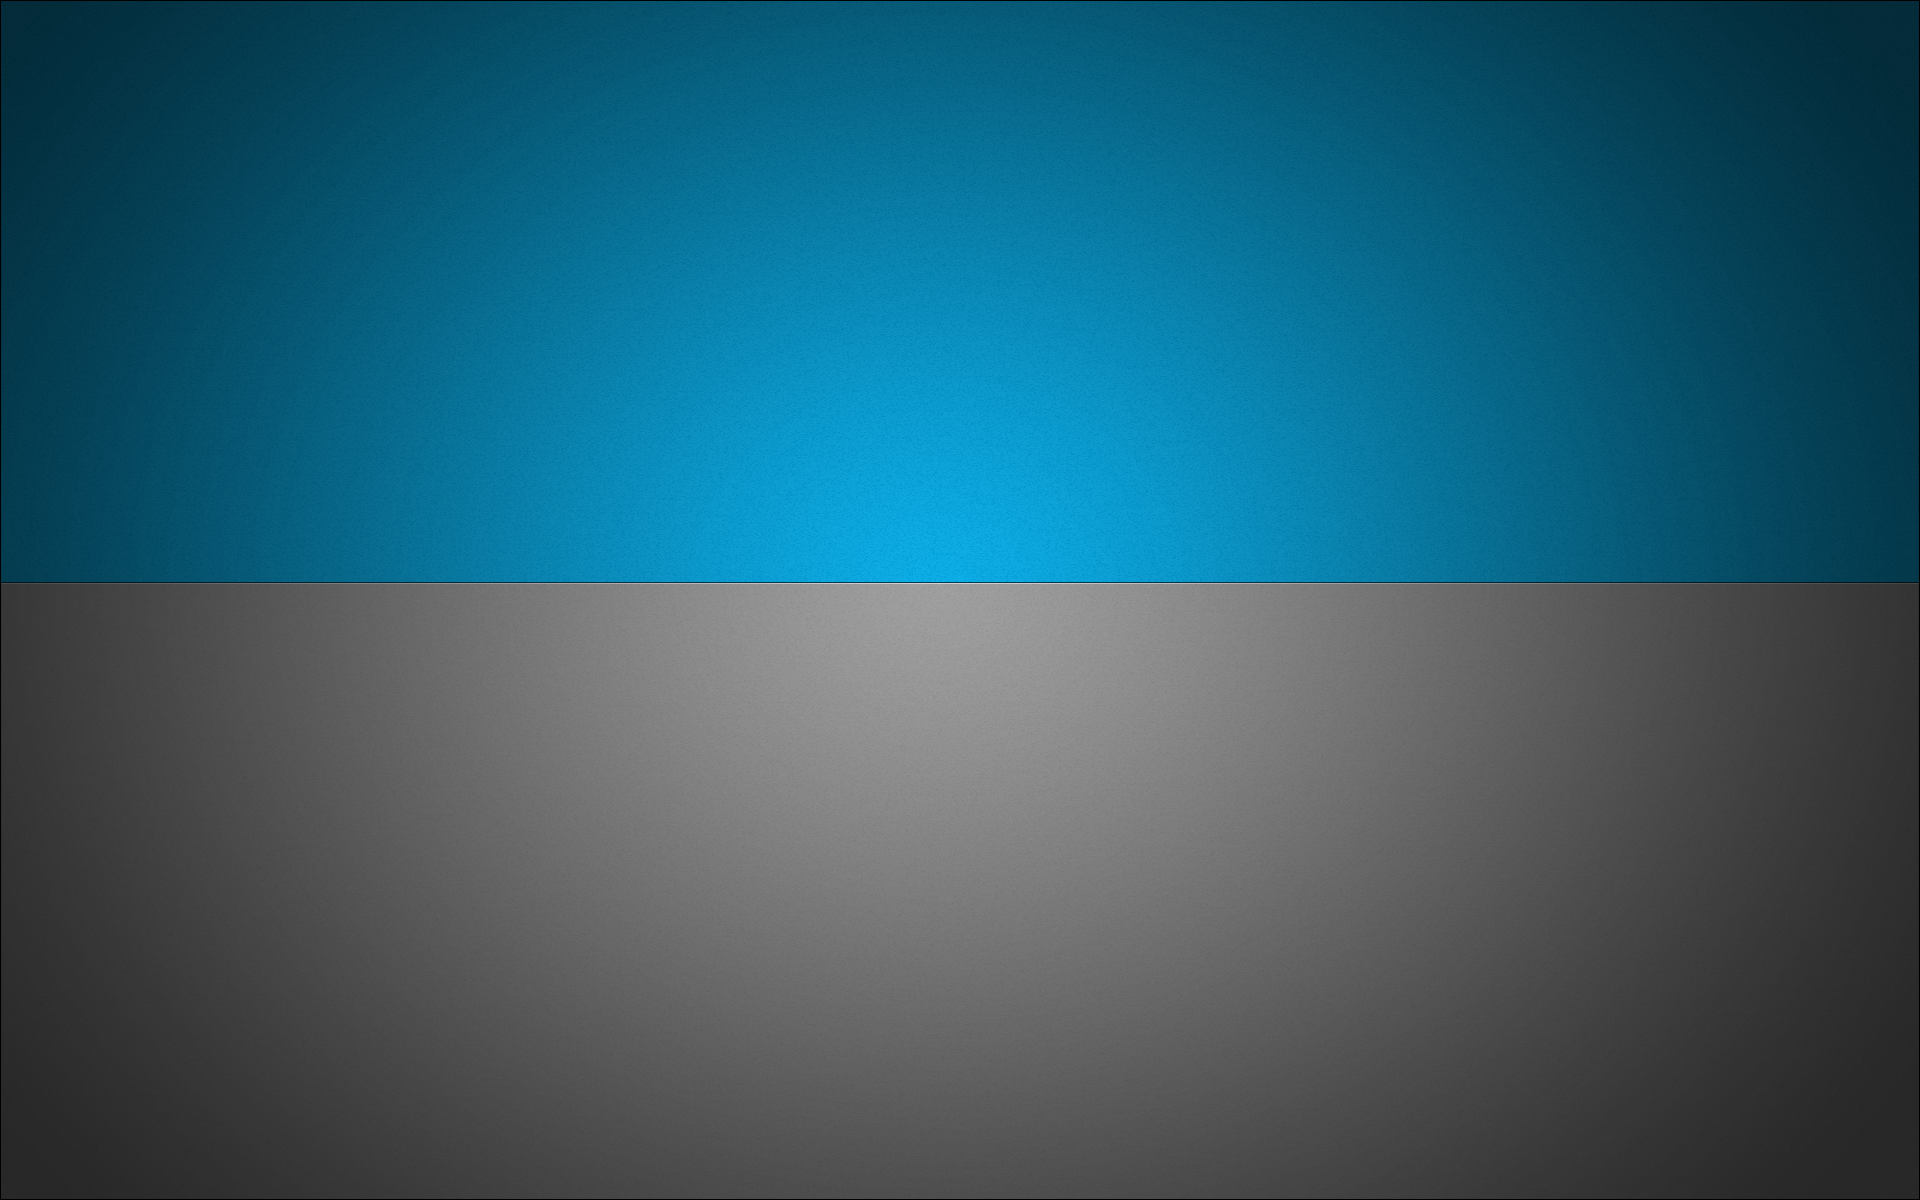 blue together with gray